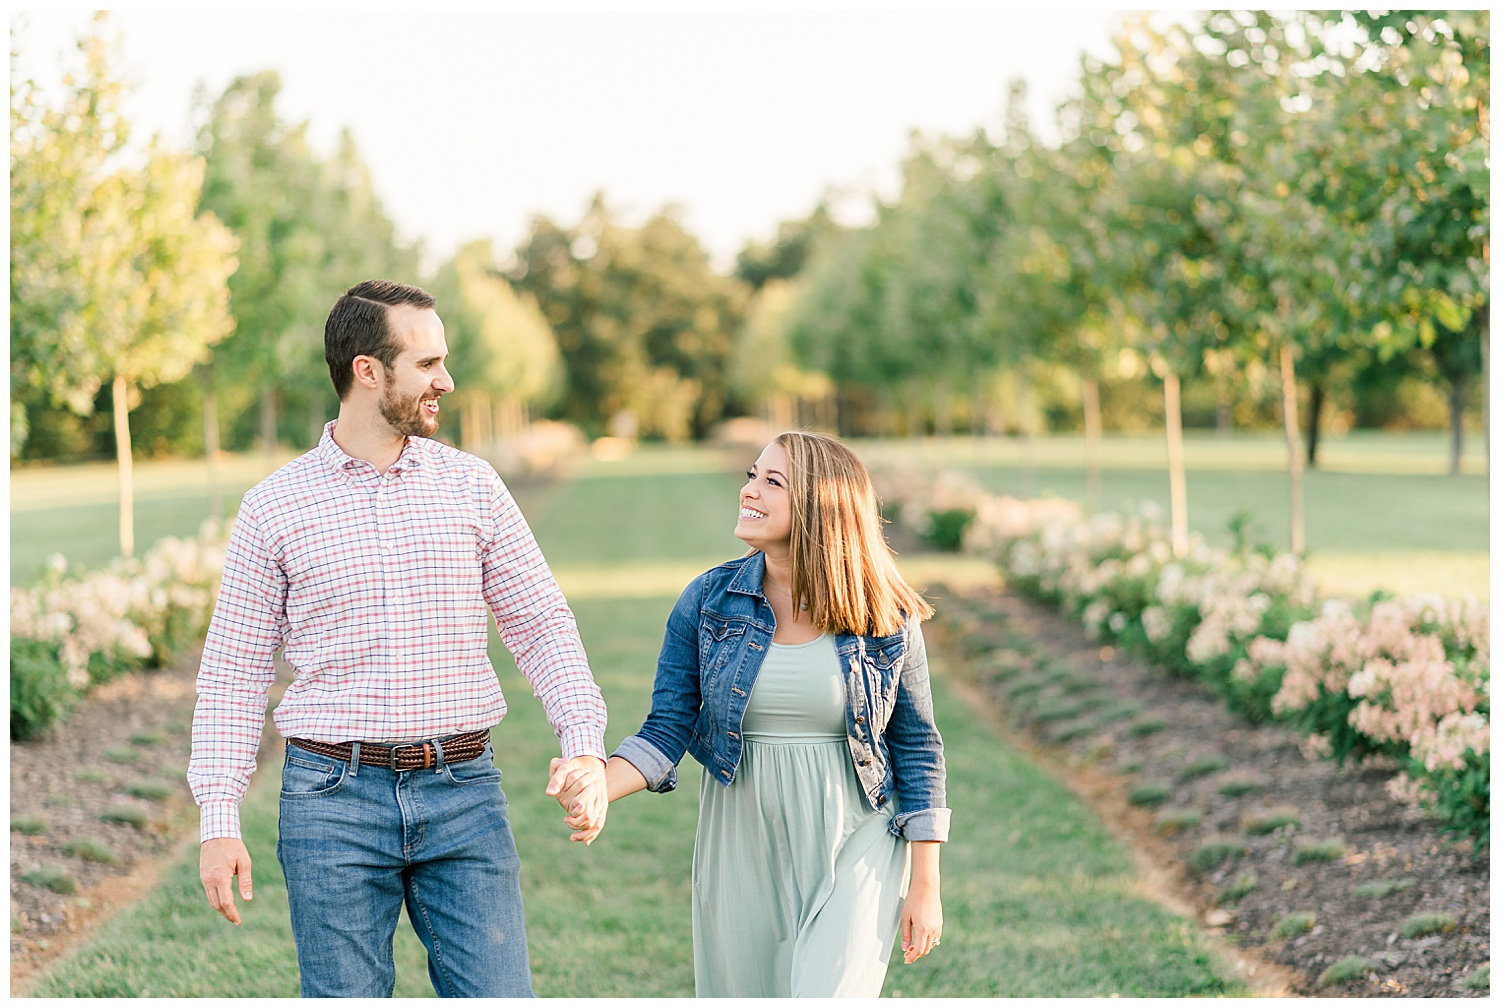 Cox_Arboretum_Anniversary_Session_Miamisburg_Ohio_Cassandra_Janina_Photography_Ohio_Wedding_Photographer_0265.jpg